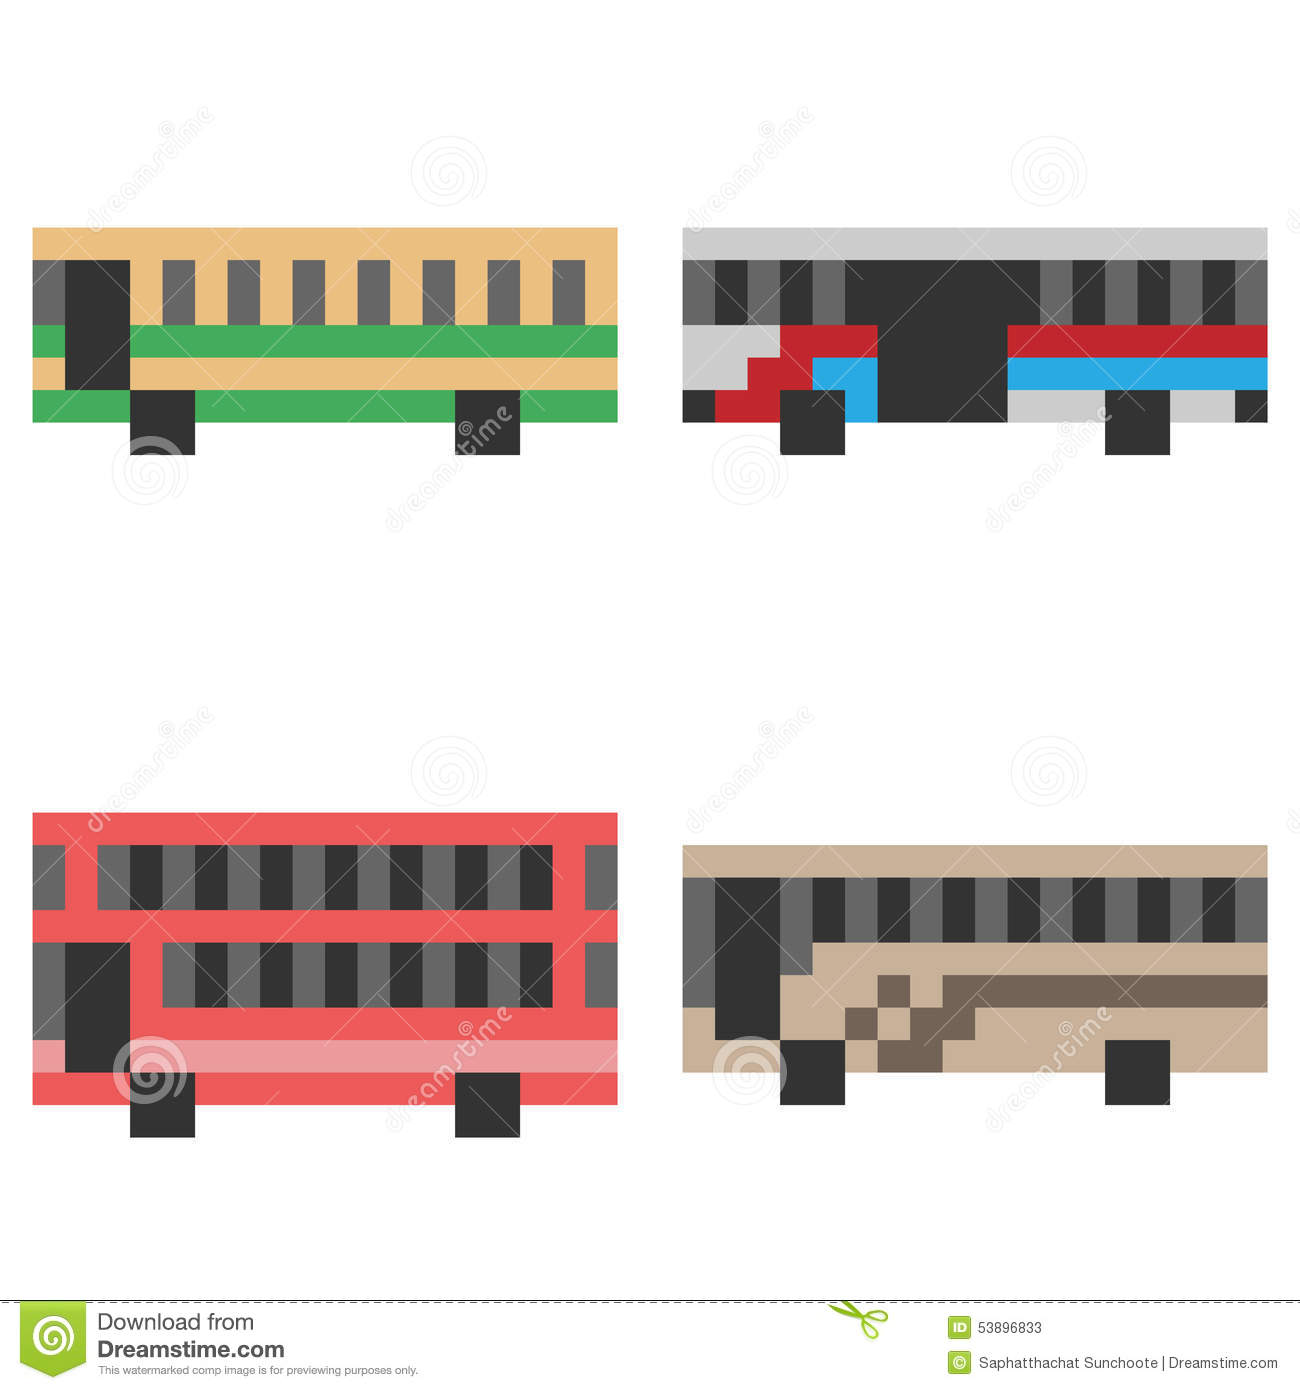 illustration-pixel-art-icon-bus-vector-i